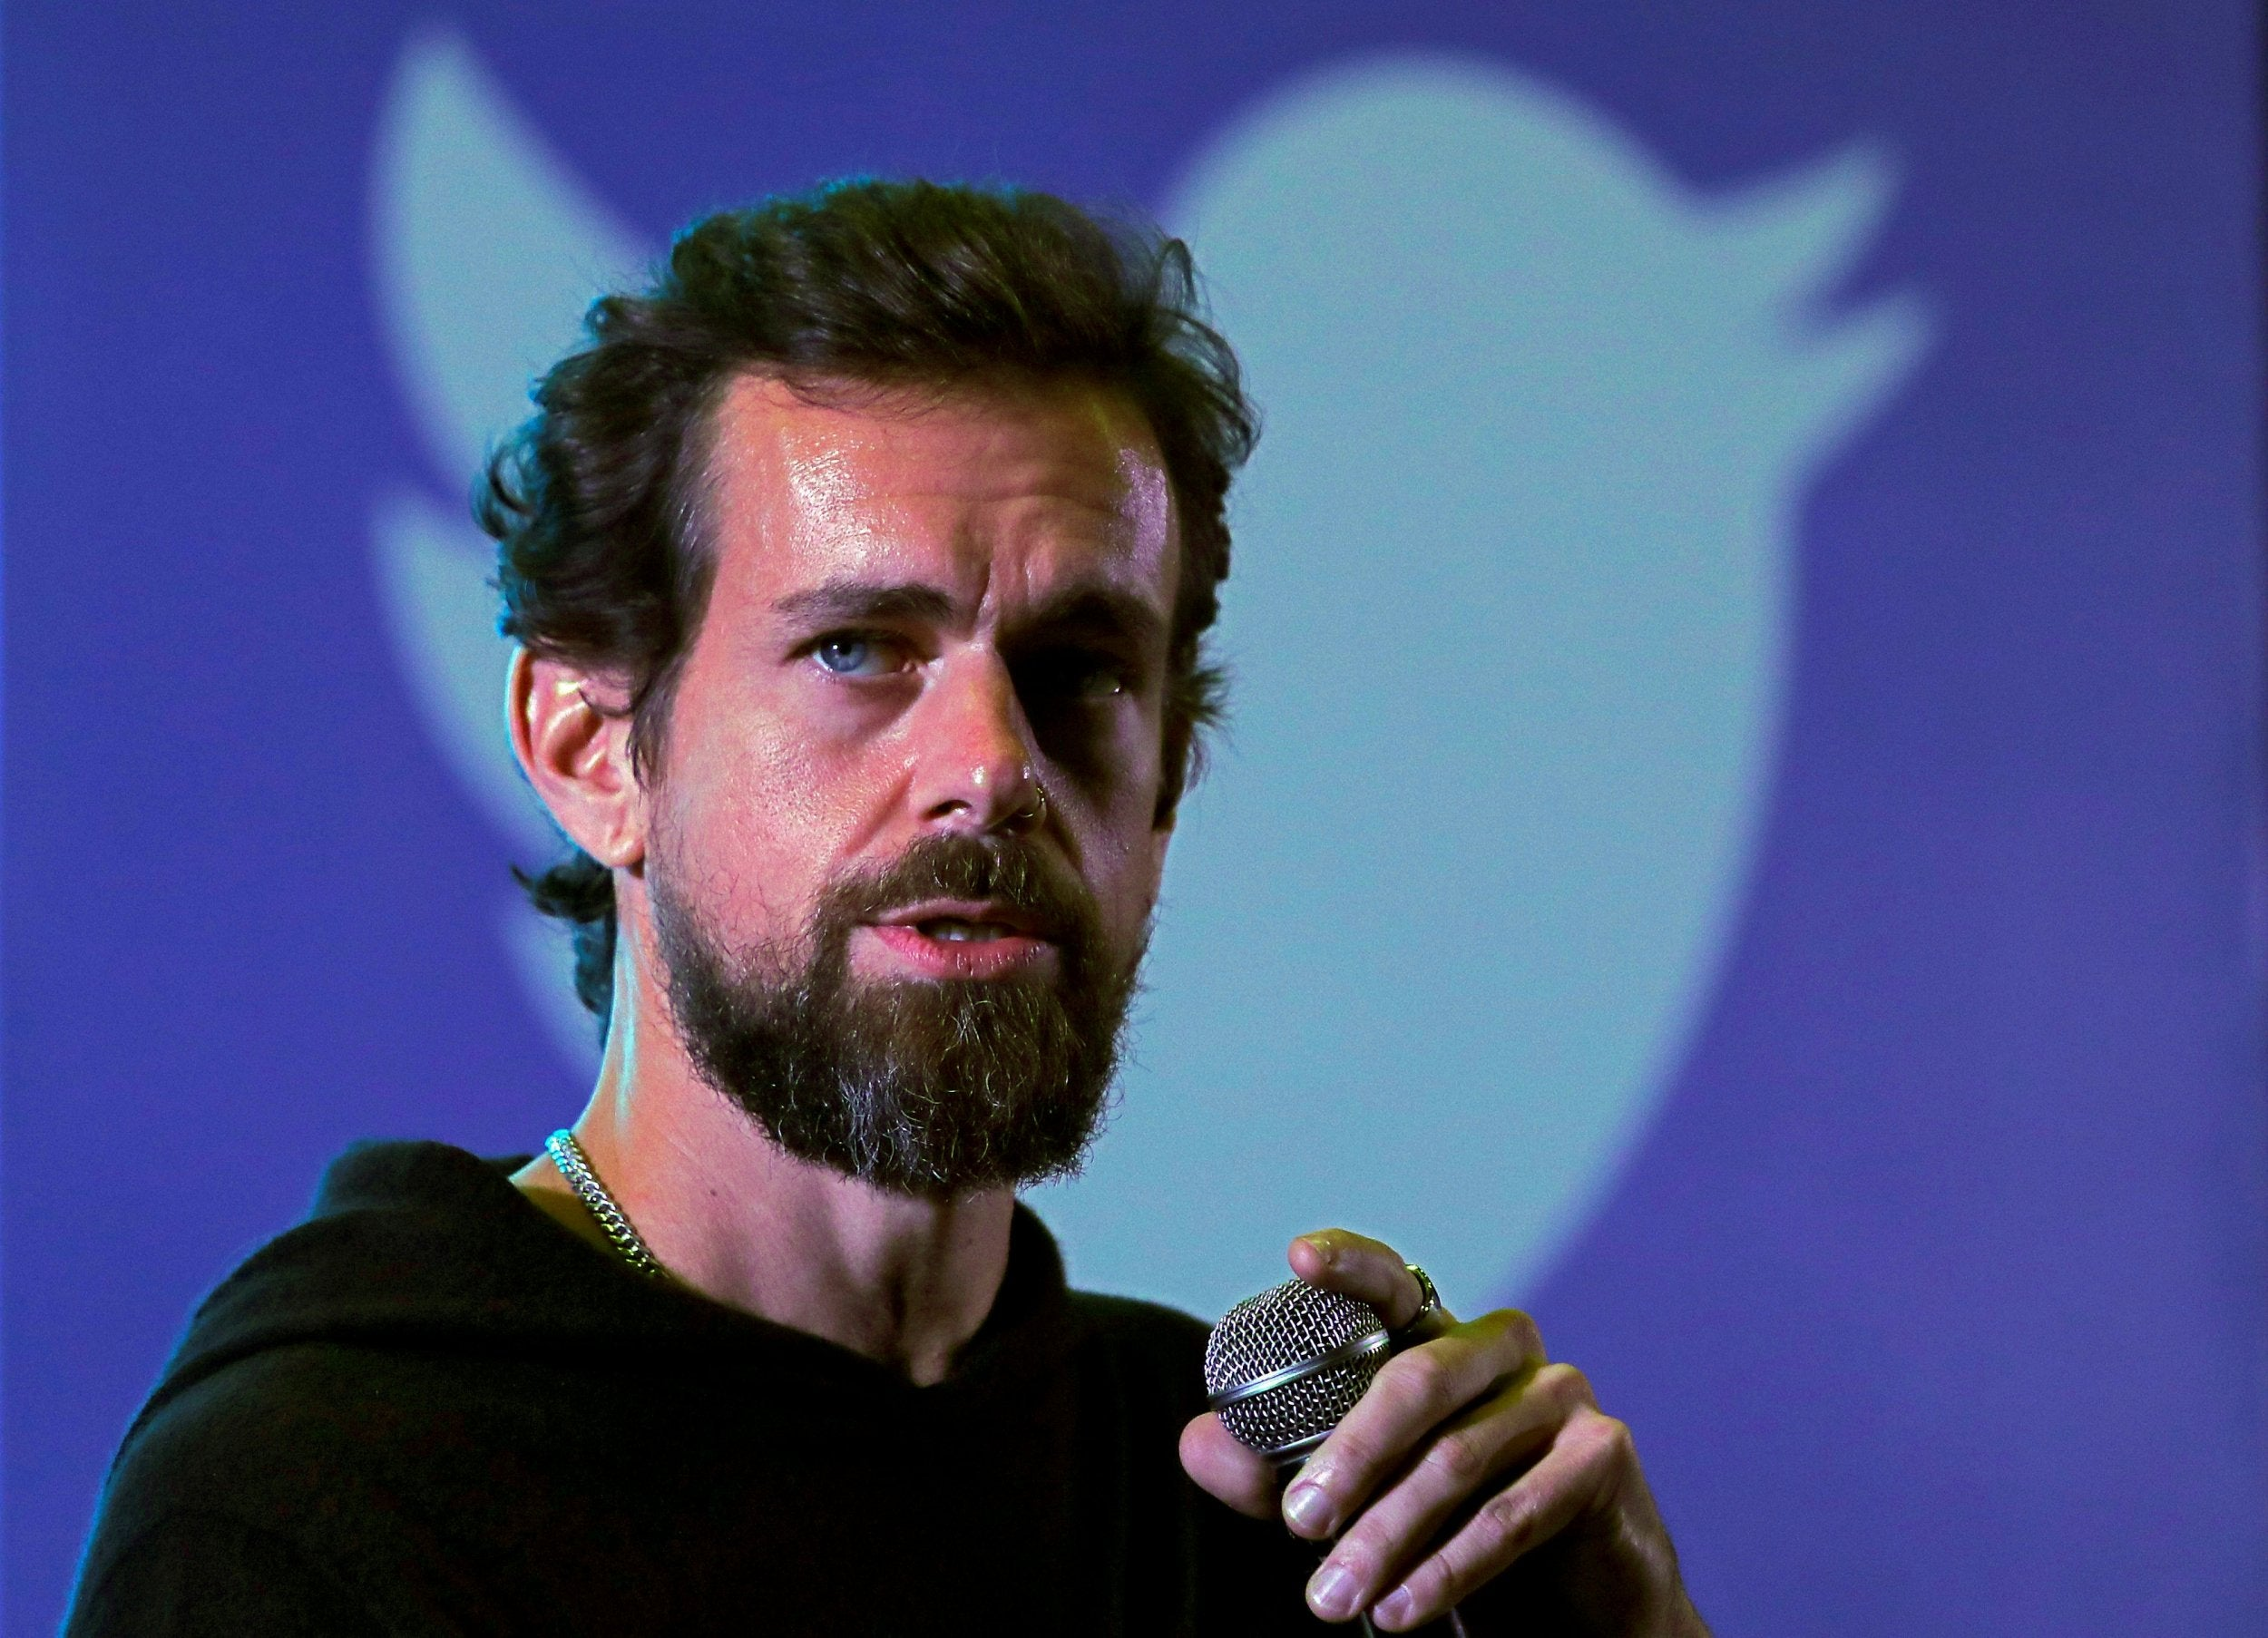 Twitter Chief Jack Dorsey Faces Backlash After Promoting Tourism to Myanmar Despite Rohingya Crisis